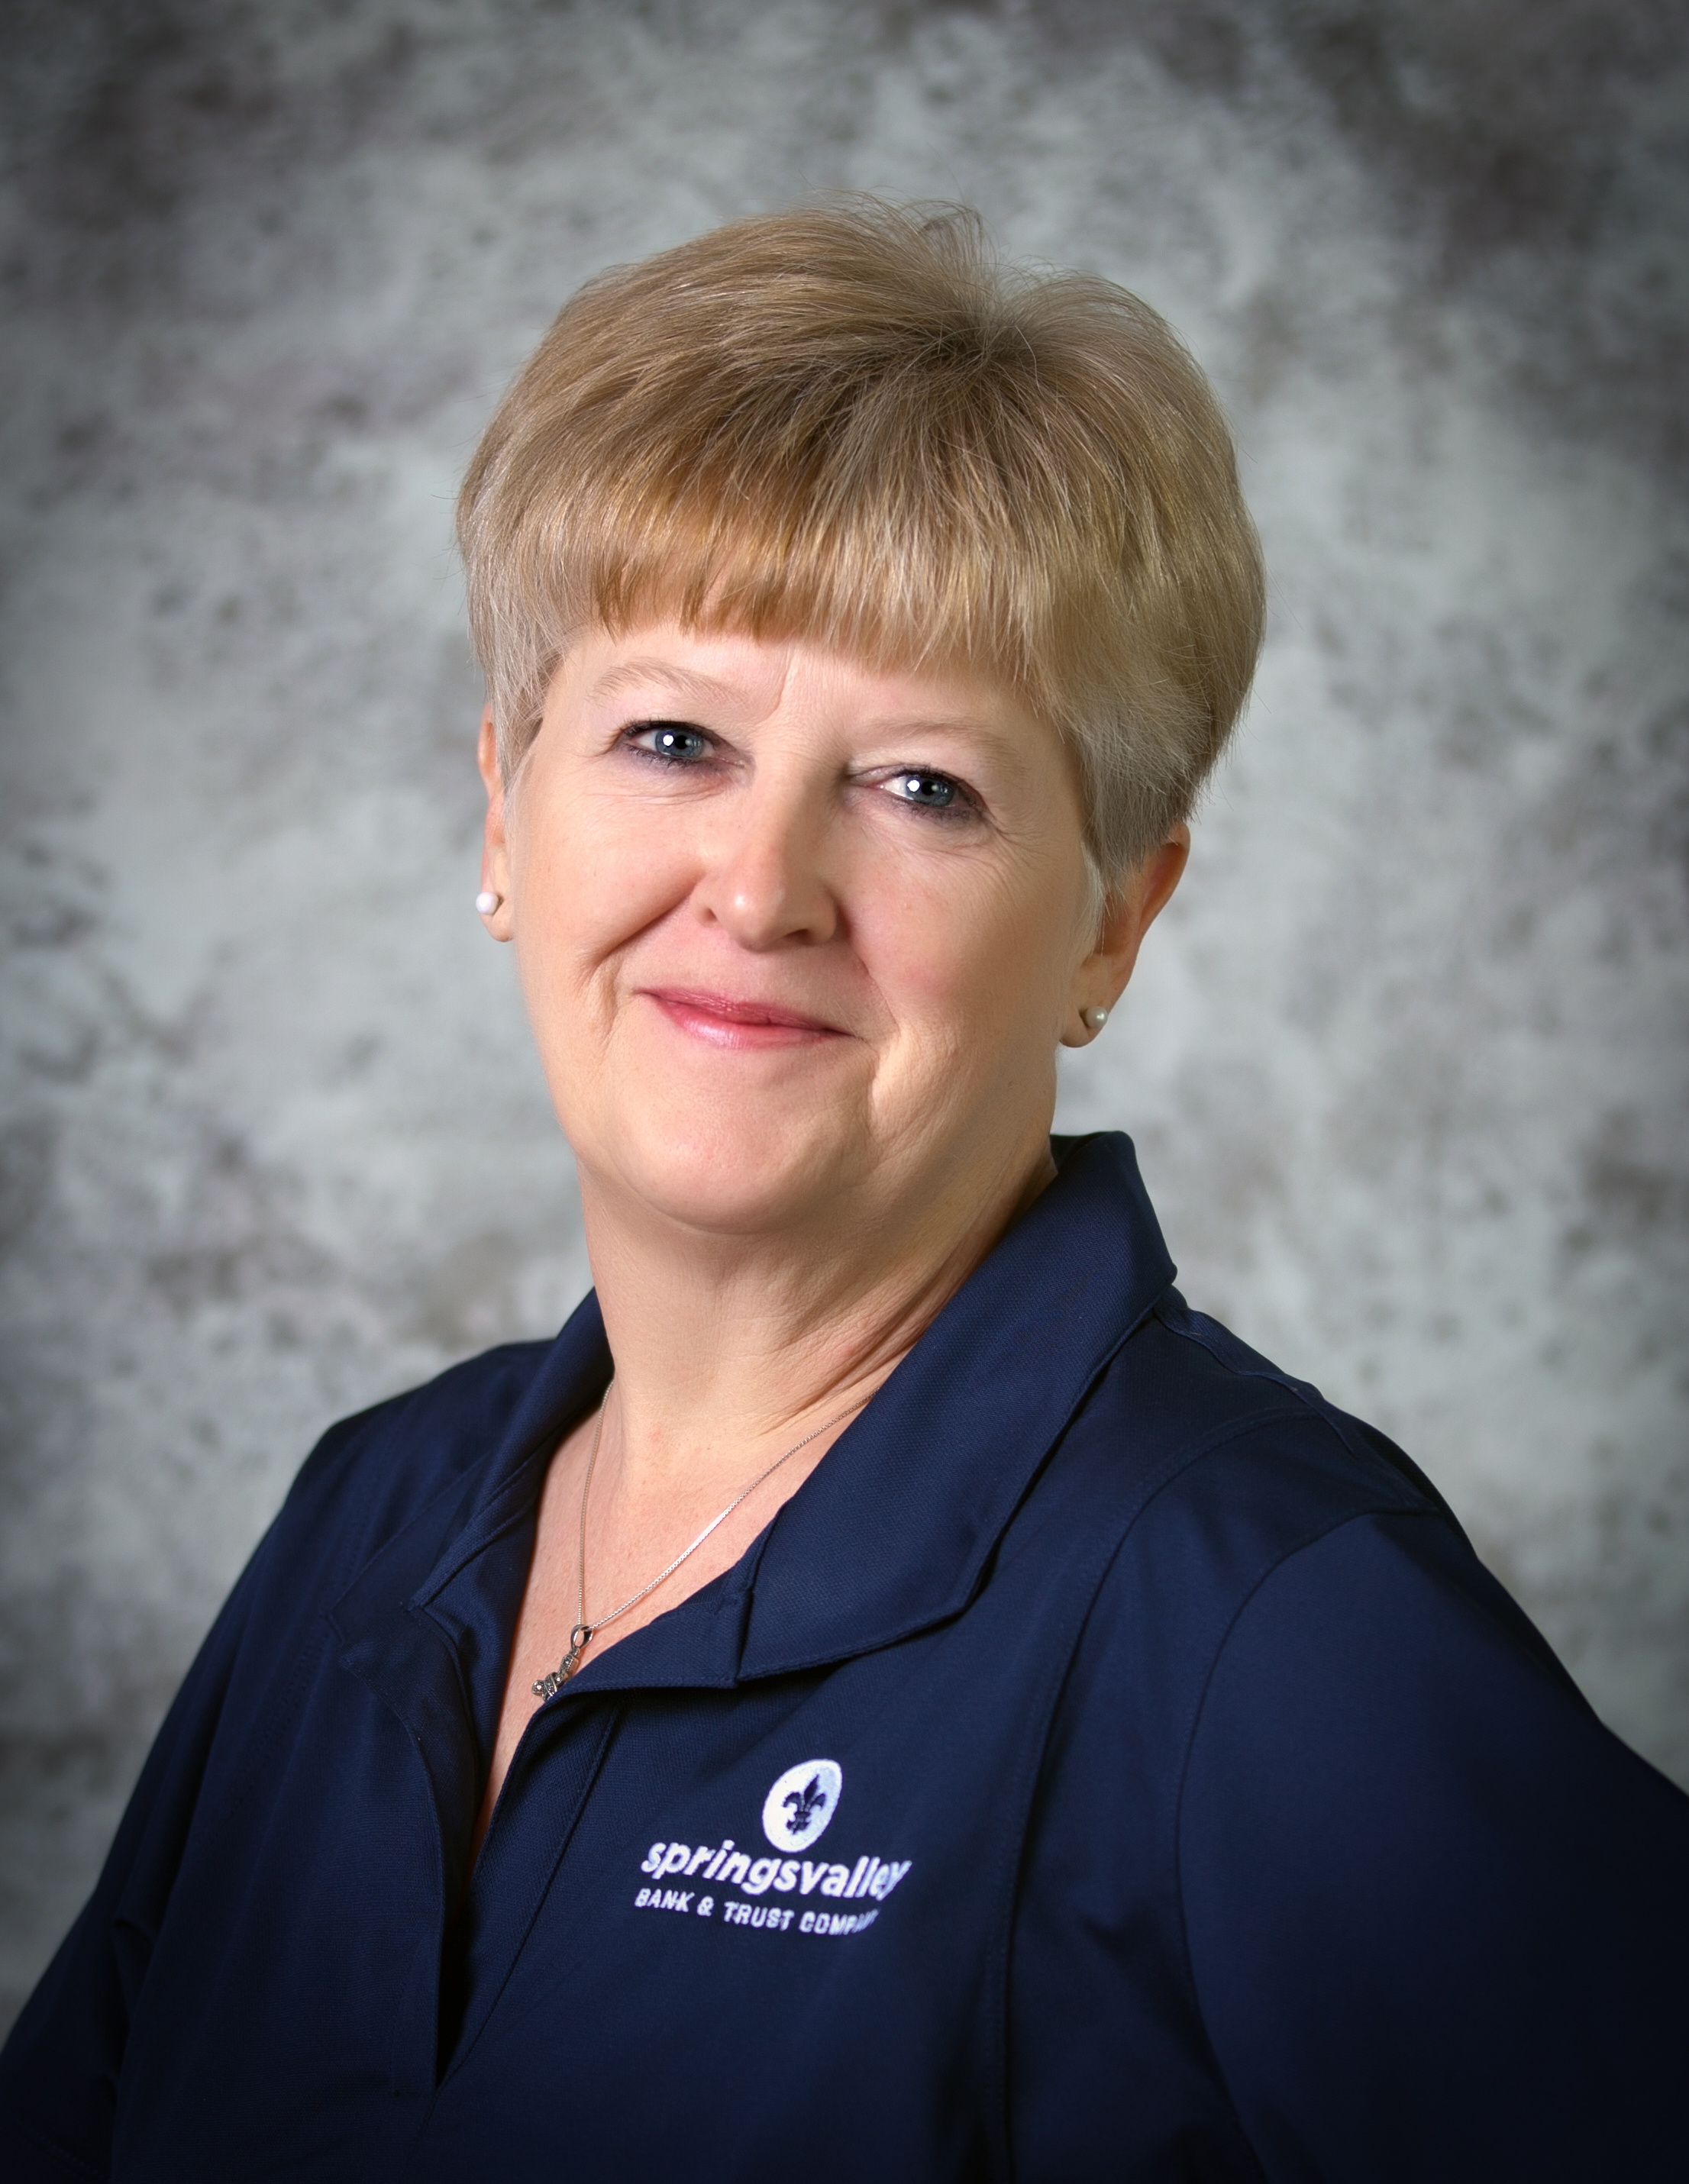 Debbie Land Retires from Springs Valley Bank & Trust Company